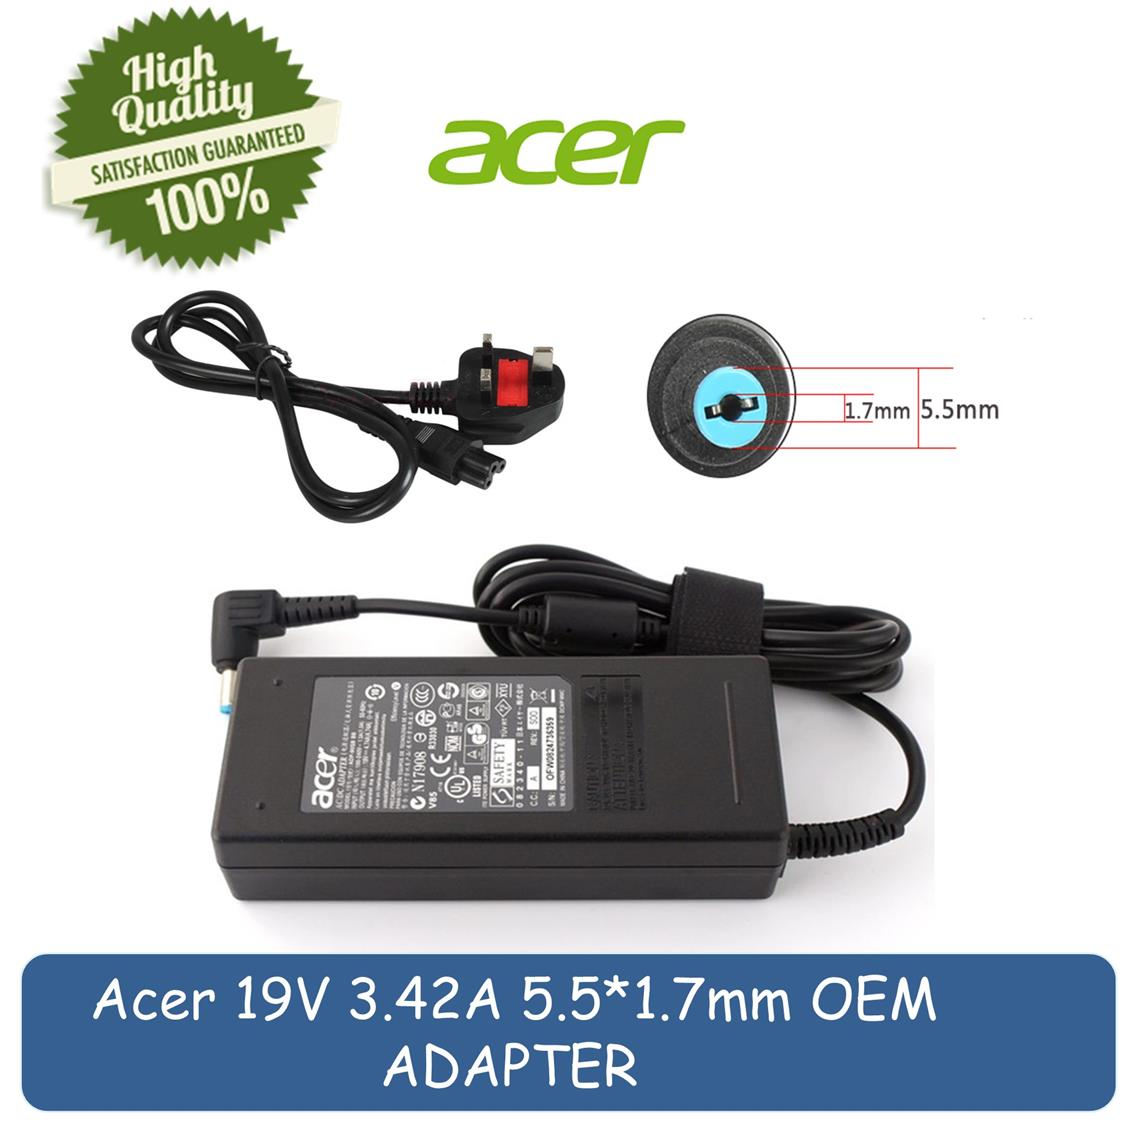 Acer Aspire V5 V3 E1 Series 65w Laptop AC Adapter Charger